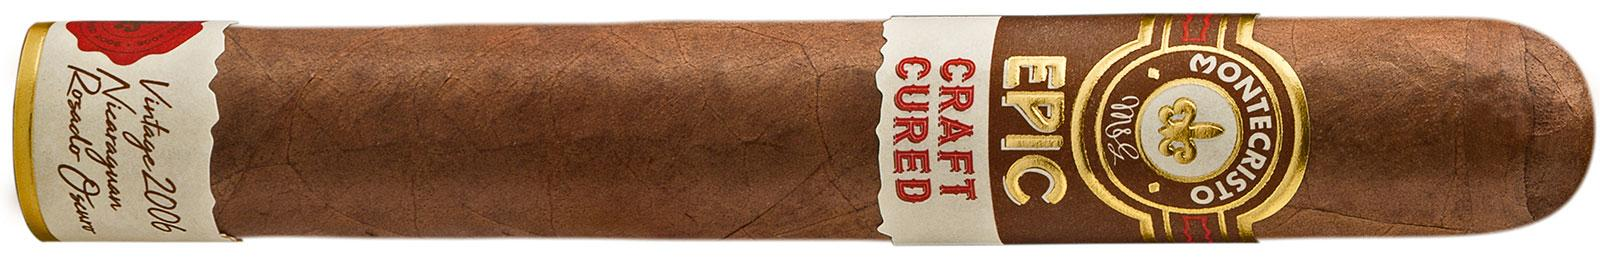 Craft Cured's aged wrapper is denoted on the cigar's footband.